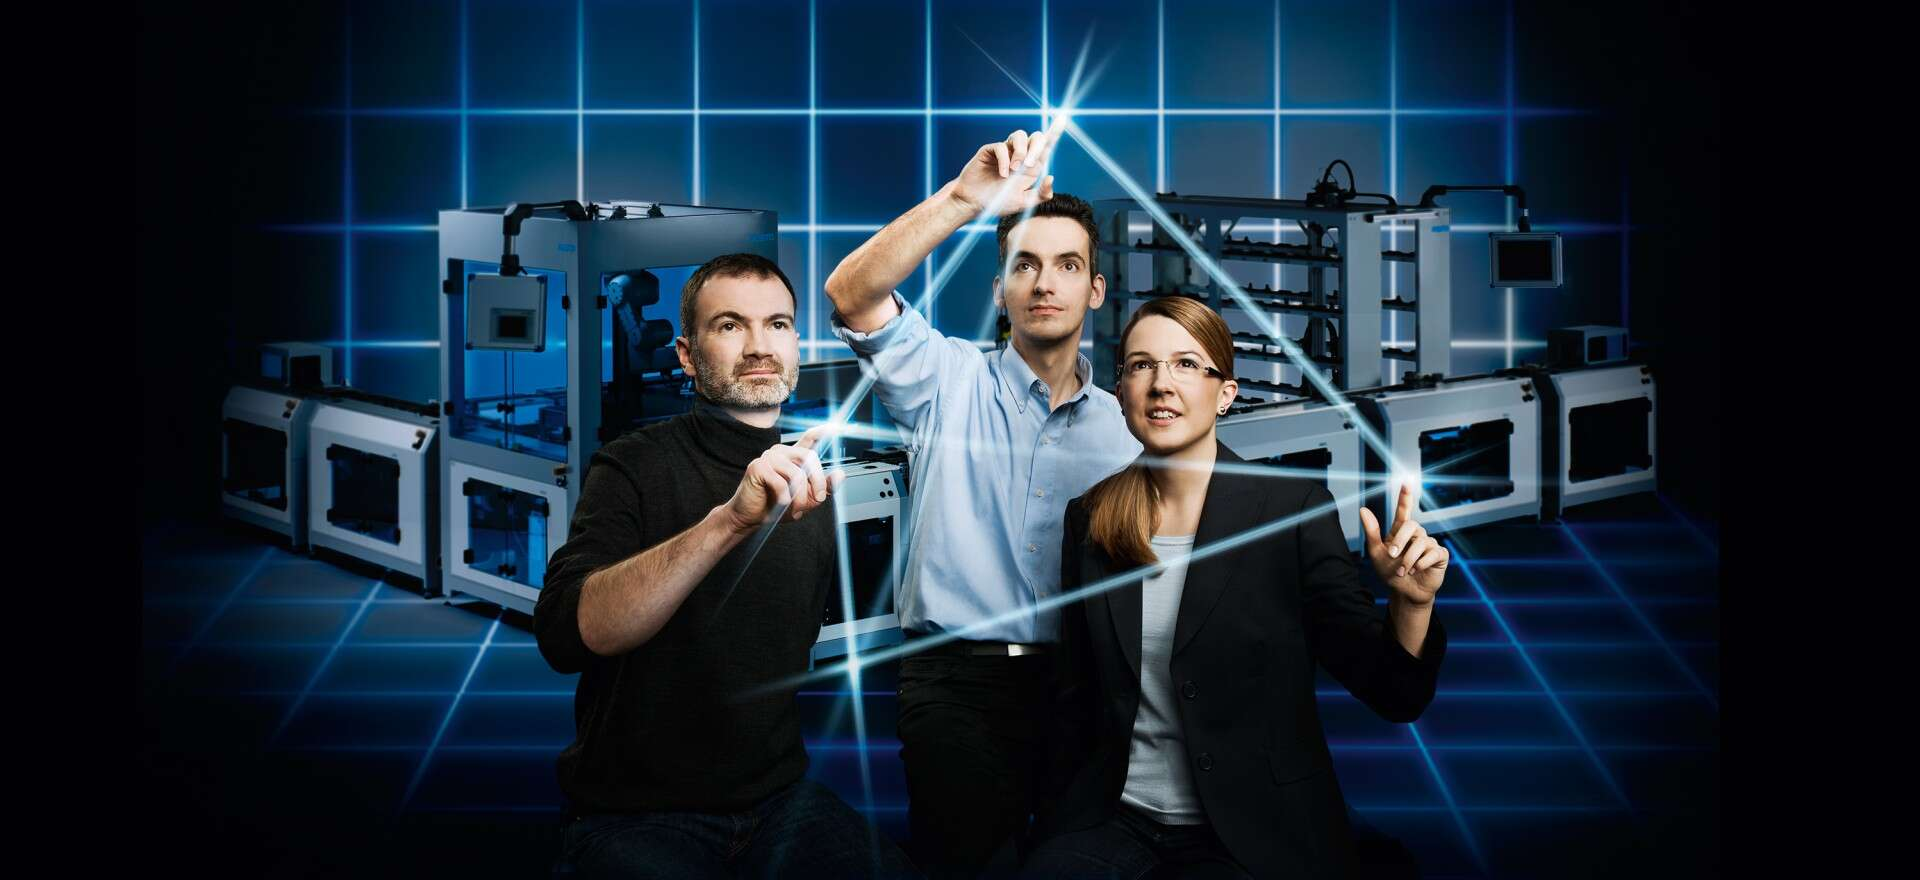 Research and development at Festo: looking to the future